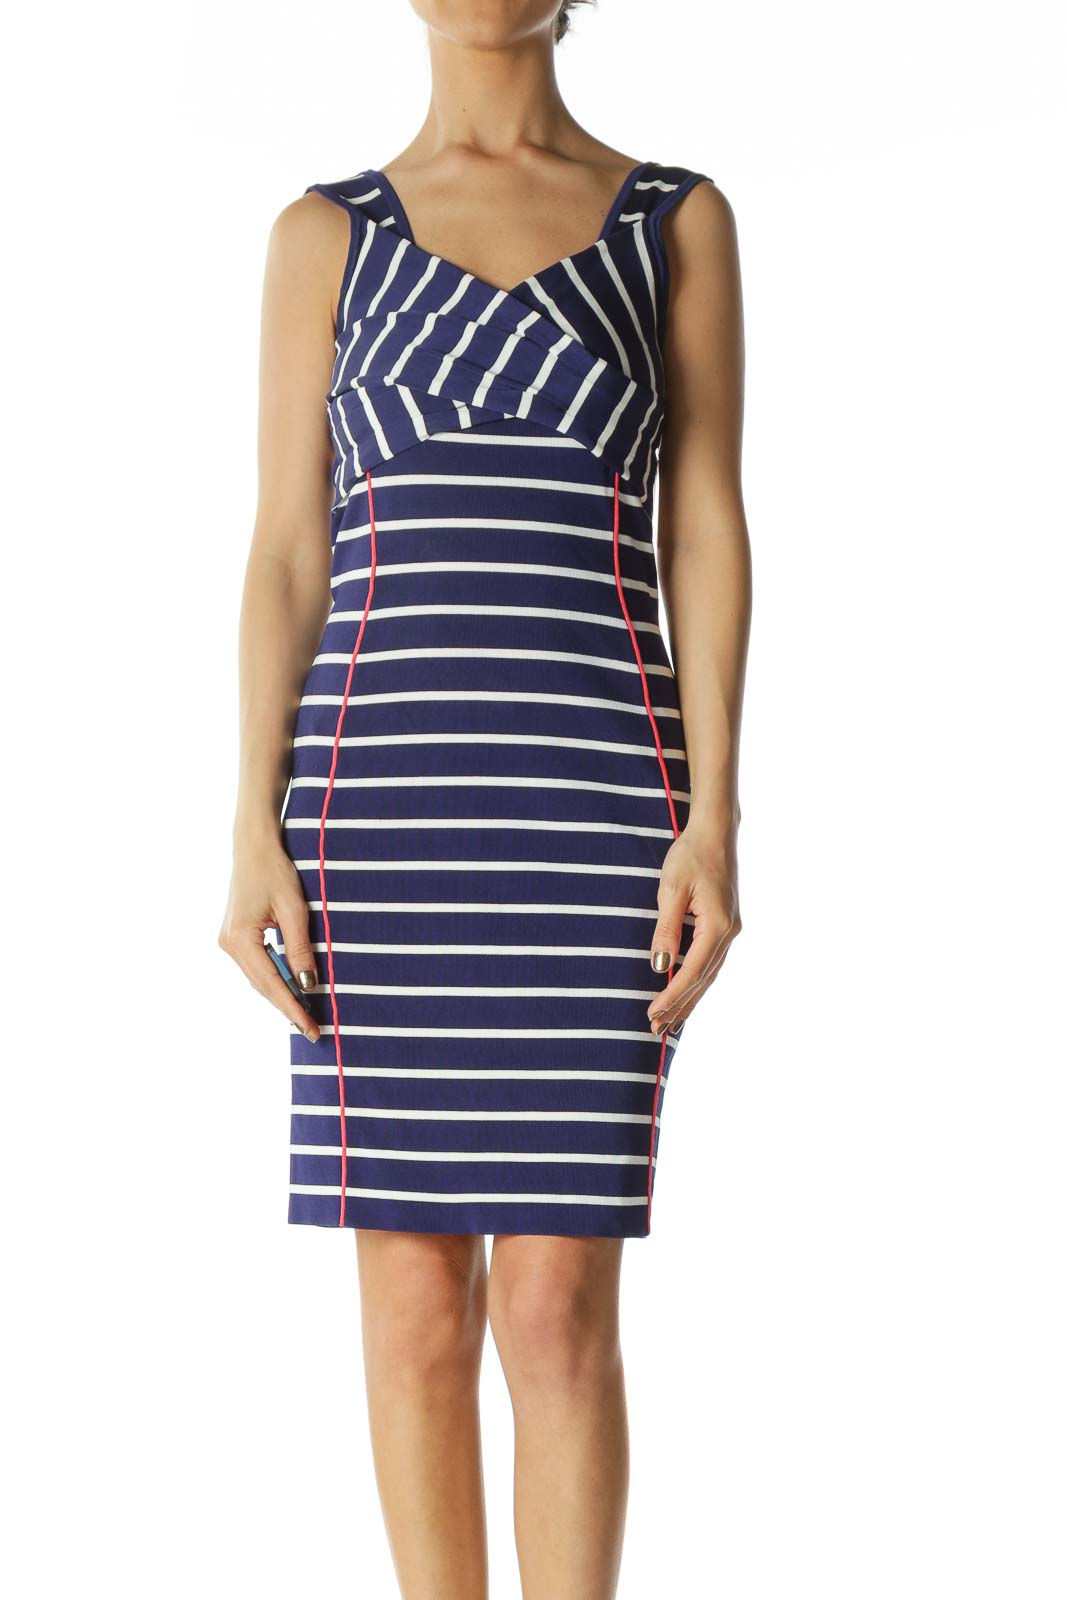 Blue/White/Pink Striped Wrap-Detail Stretch Dress